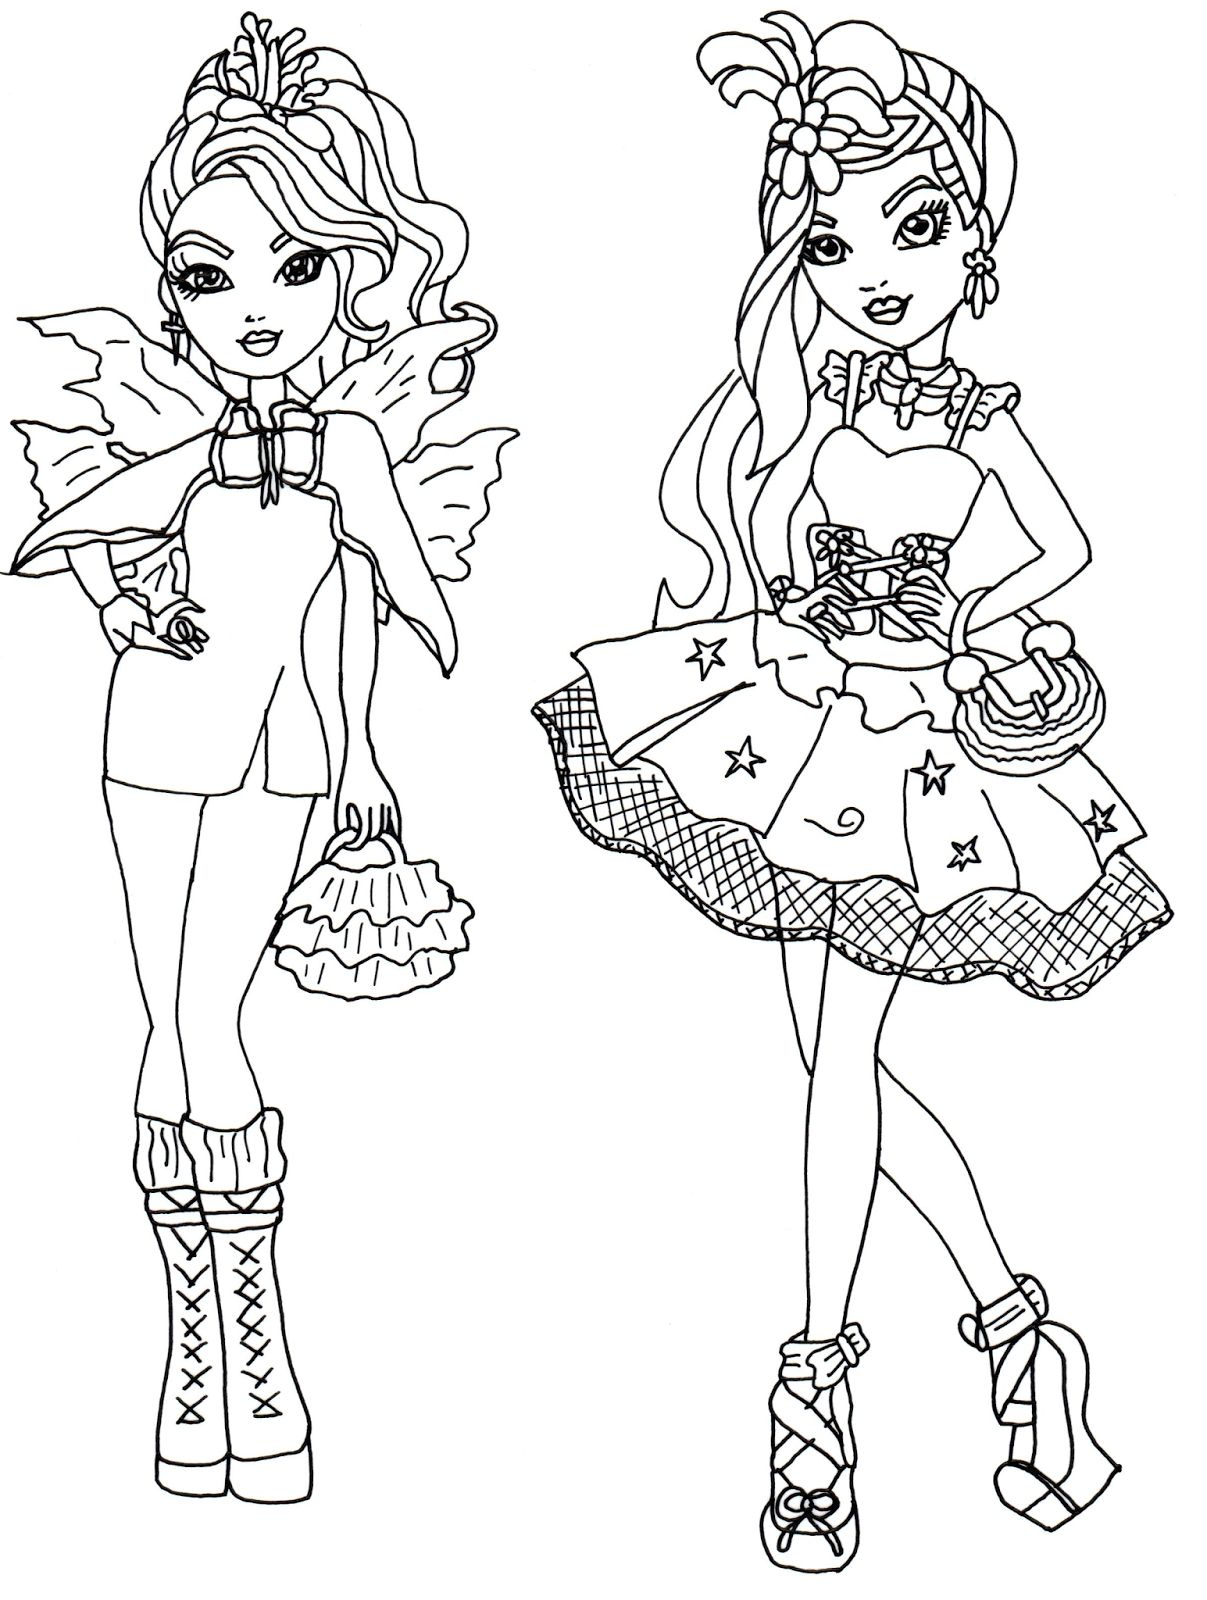 1207x1600 Ever After High Coloring Pages Getcoloringpages Download Of Ever